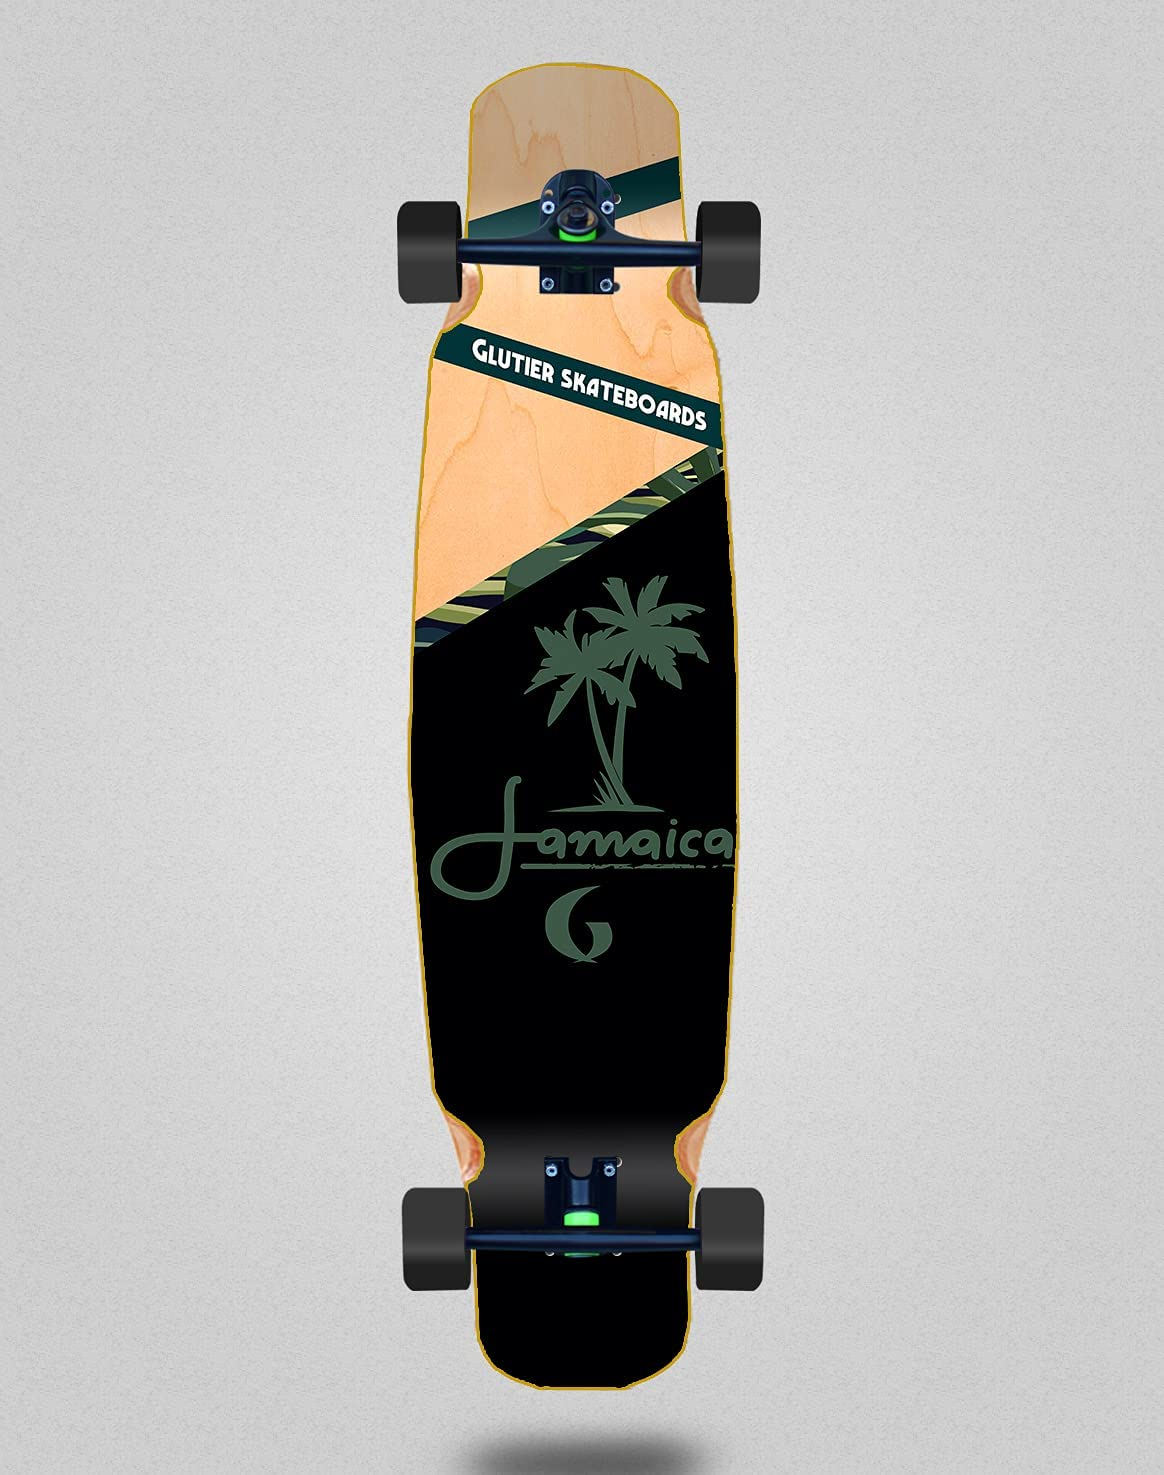 Miami Mall Skateboard Longboard Complete Mix Bamboo Wo Jamaica Glutier 70% OFF Outlet 46x9